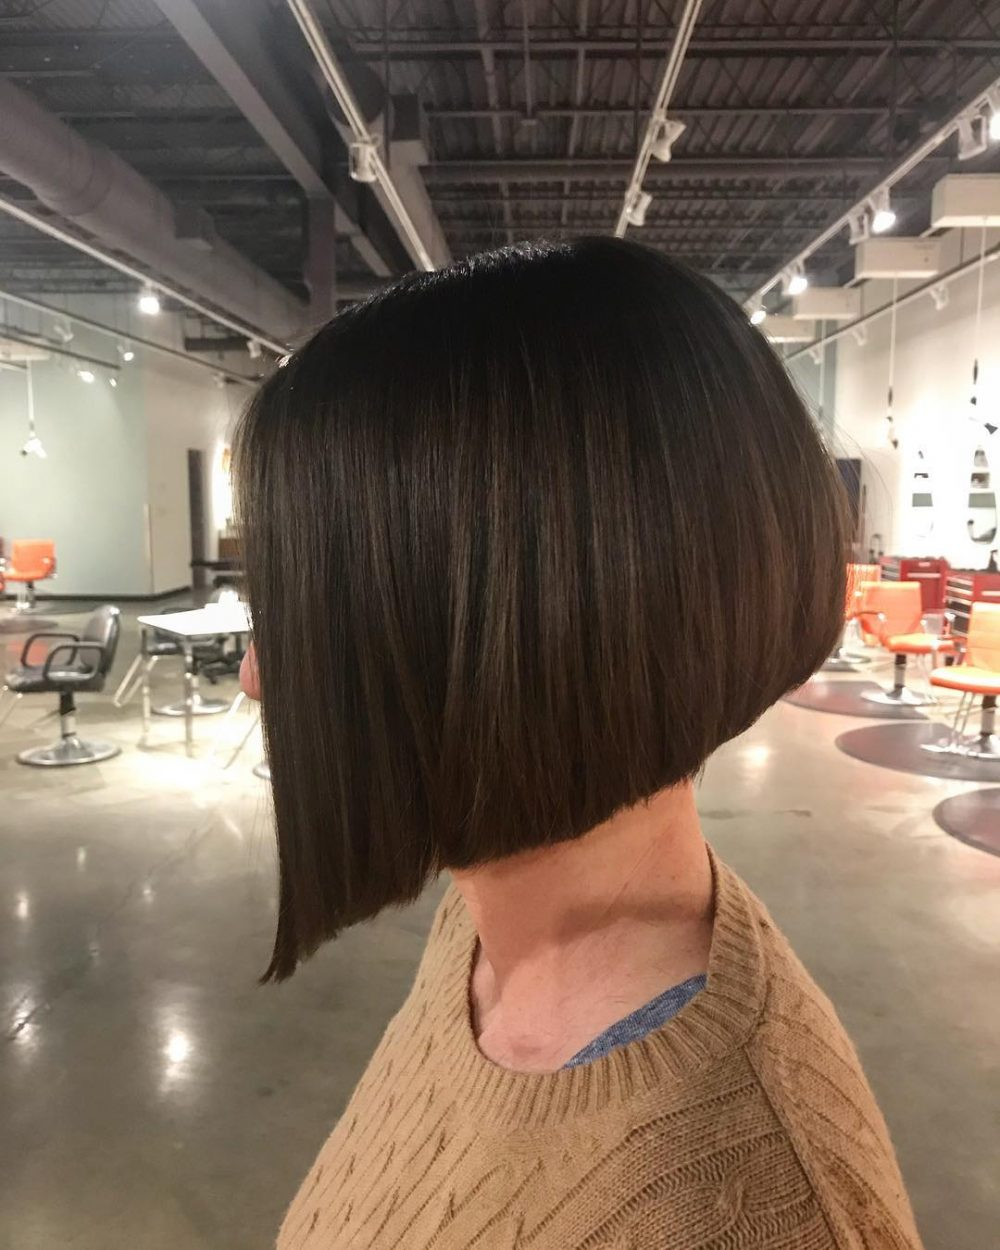 Angled-Forward Bob hairstyle